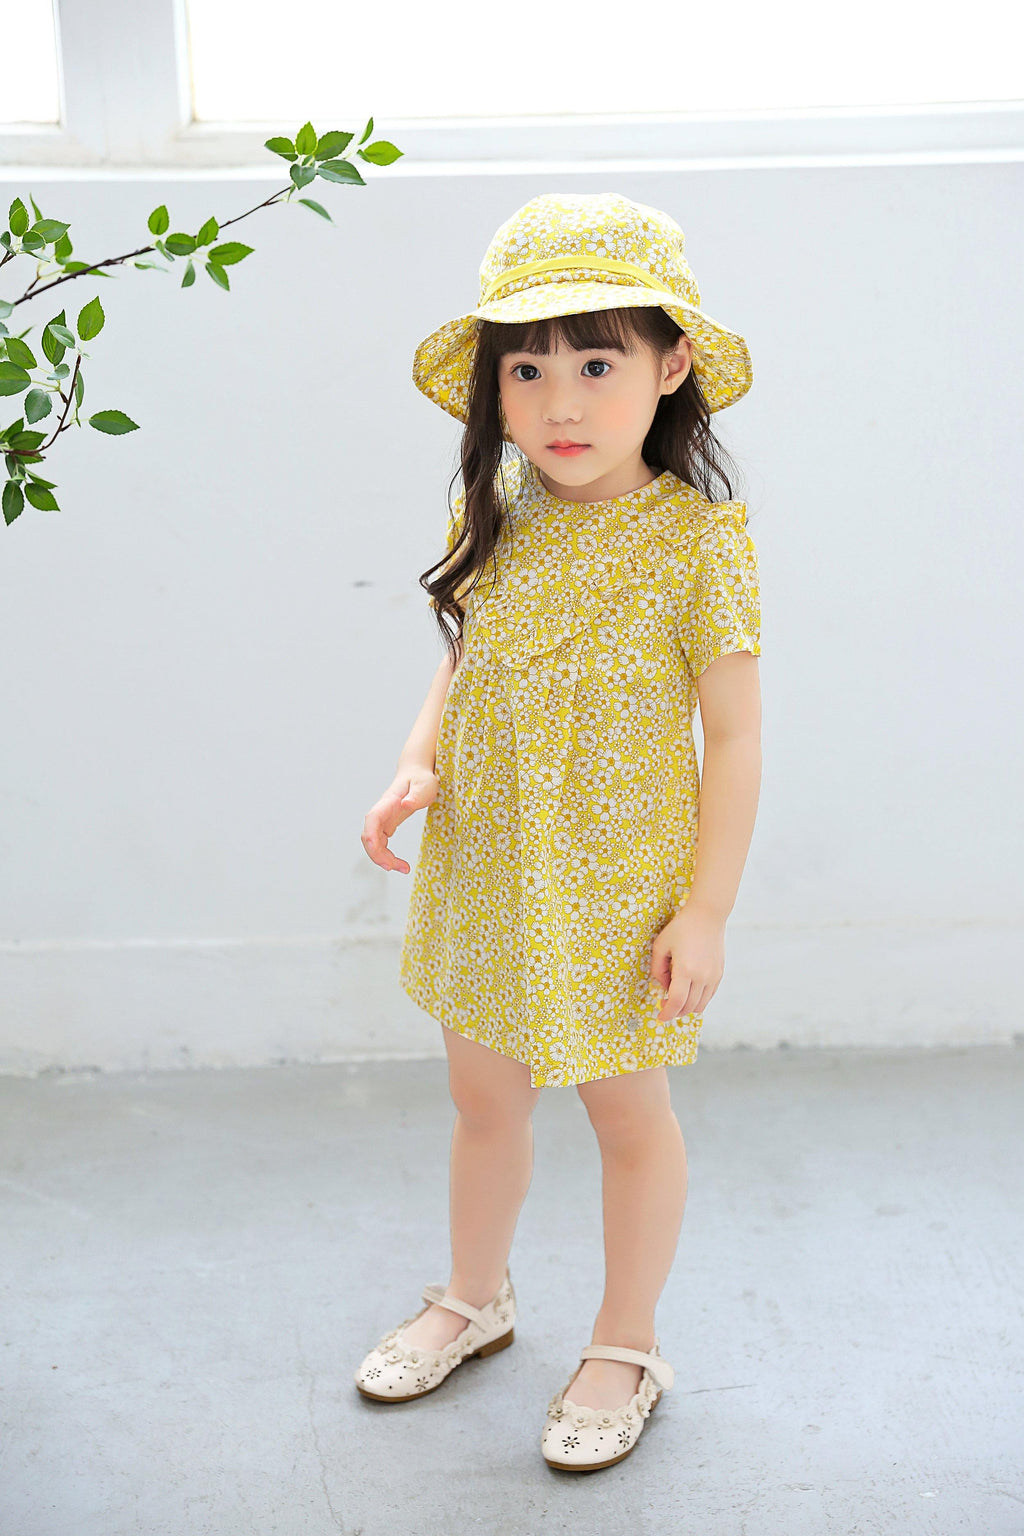 Cassidy Floral Organic Outfit